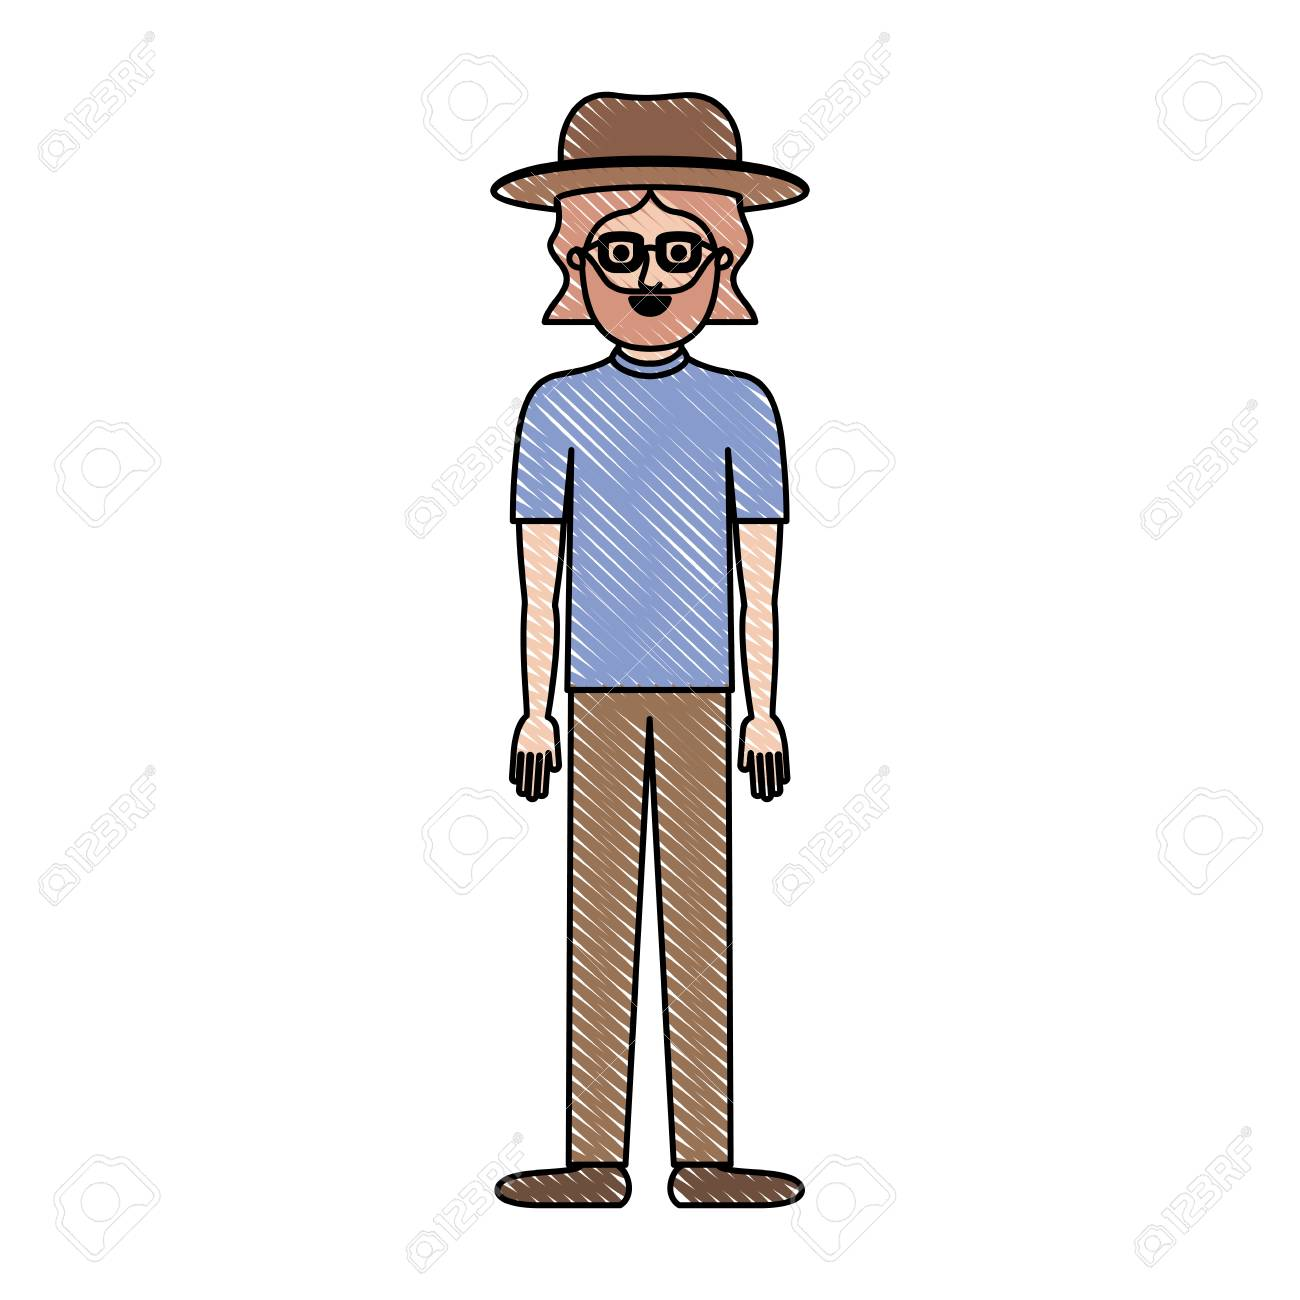 Man With Hat And Glasses And T Shirt And Pants And Shoes With Royalty Free Cliparts Vectors And Stock Illustration Image 92500402